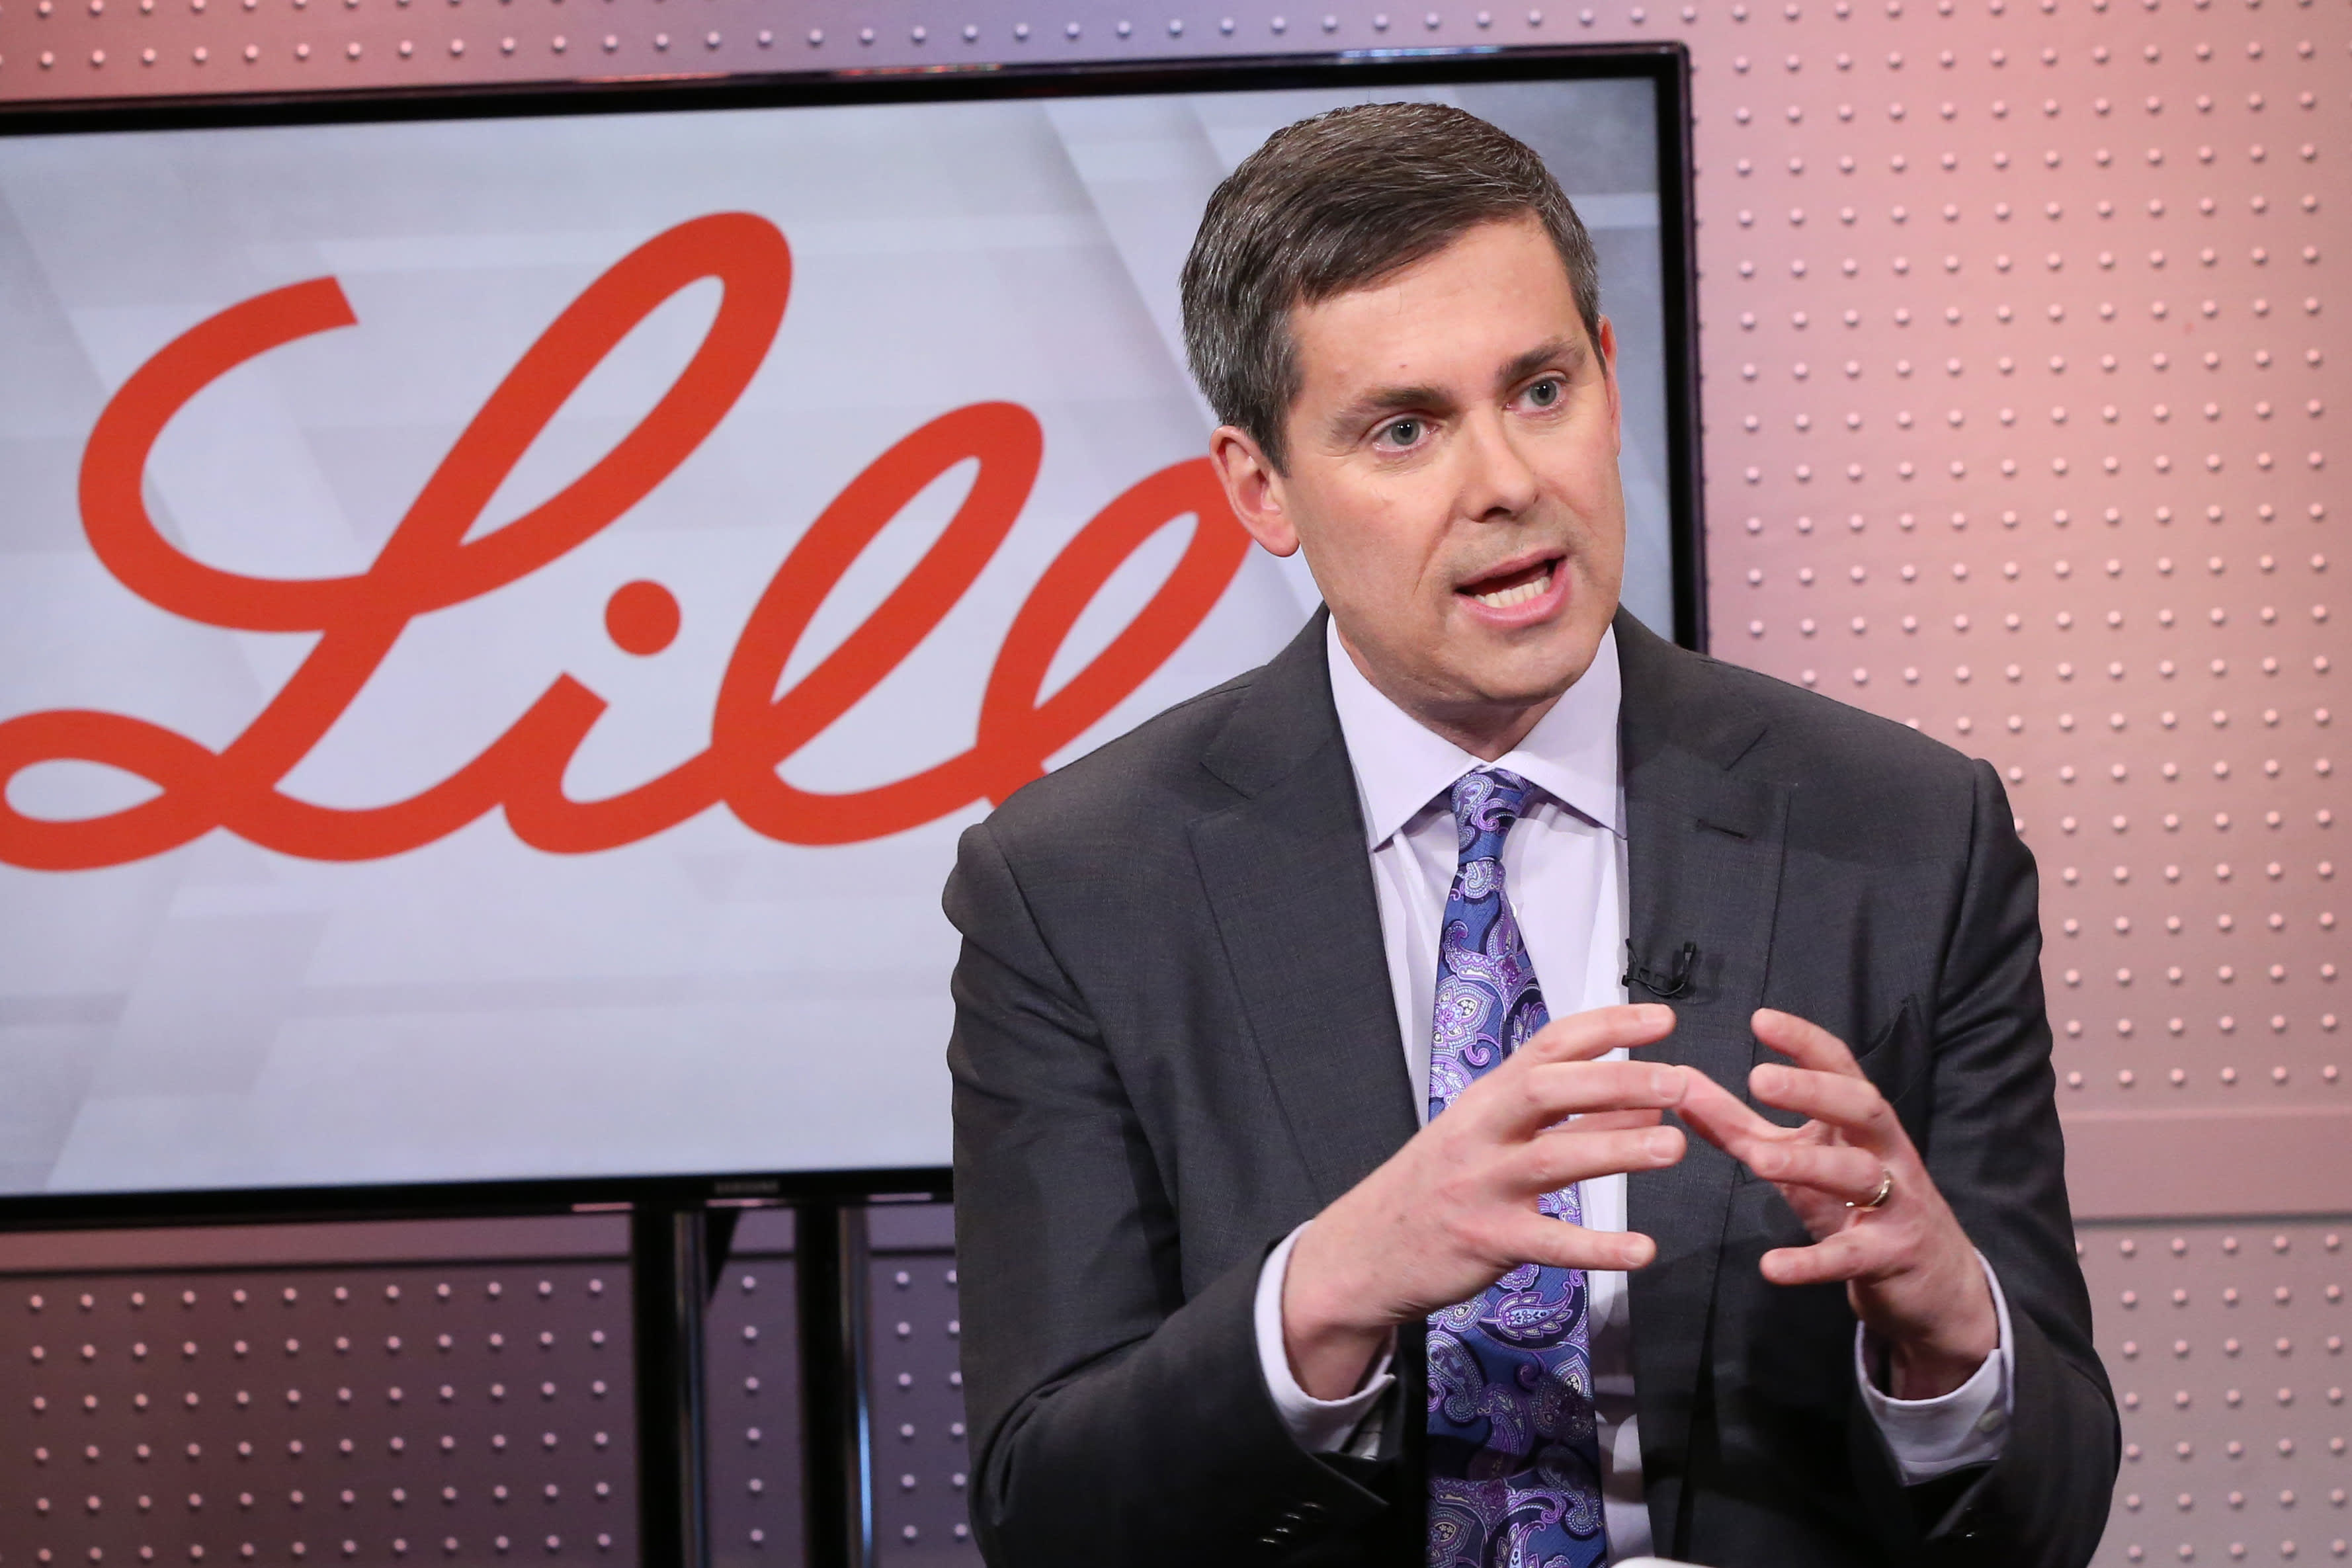 Eli Lilly CEO: Speed and industry cooperation are aiding coronavirus treatment development